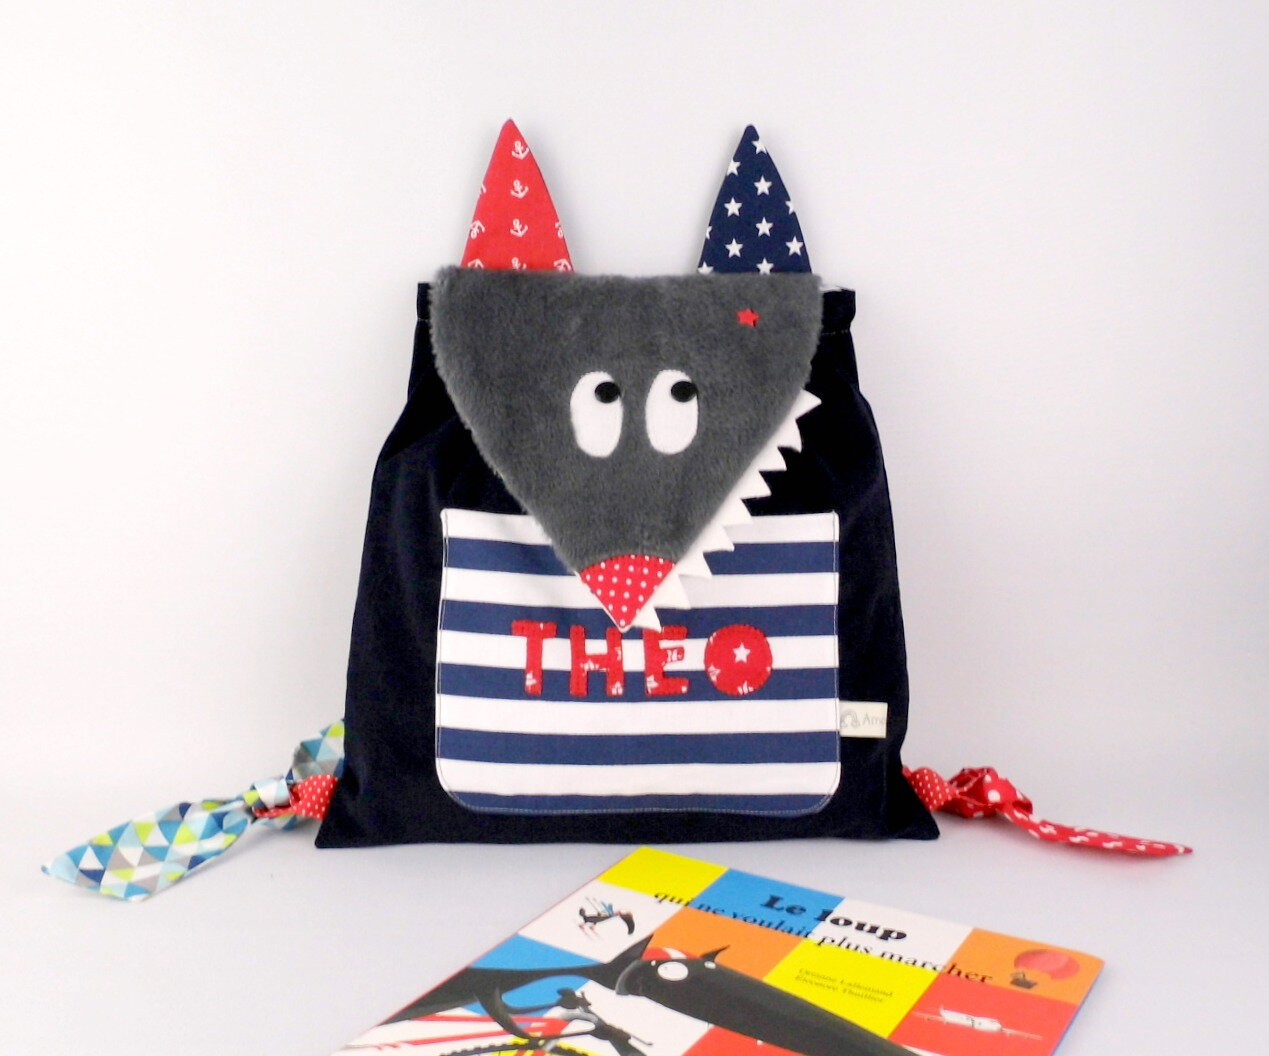 Sac garçon maternelle perosnnalisable prénom Theo style marin rouge bleu rayé navy ancres étoiles kids personnalized name backpack wolf navy red